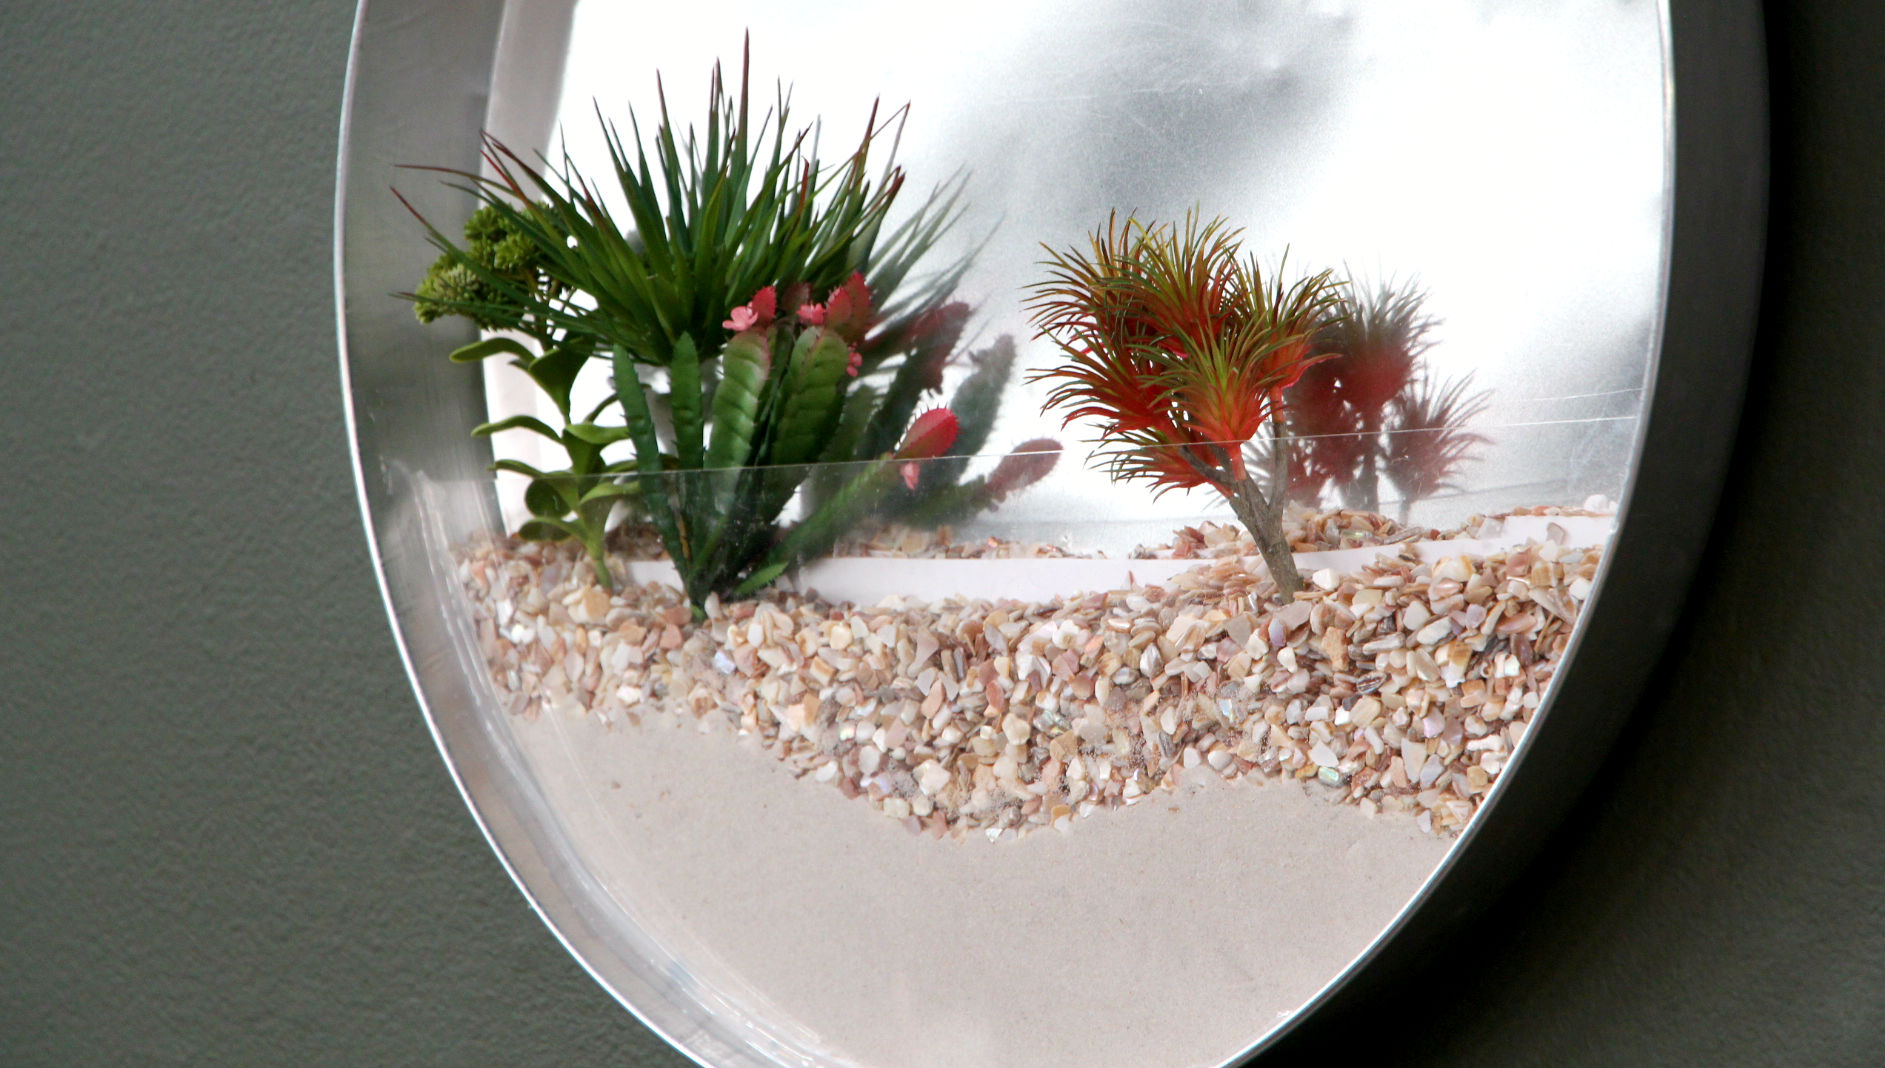 Create a living garden in your home with this DIY terrarium